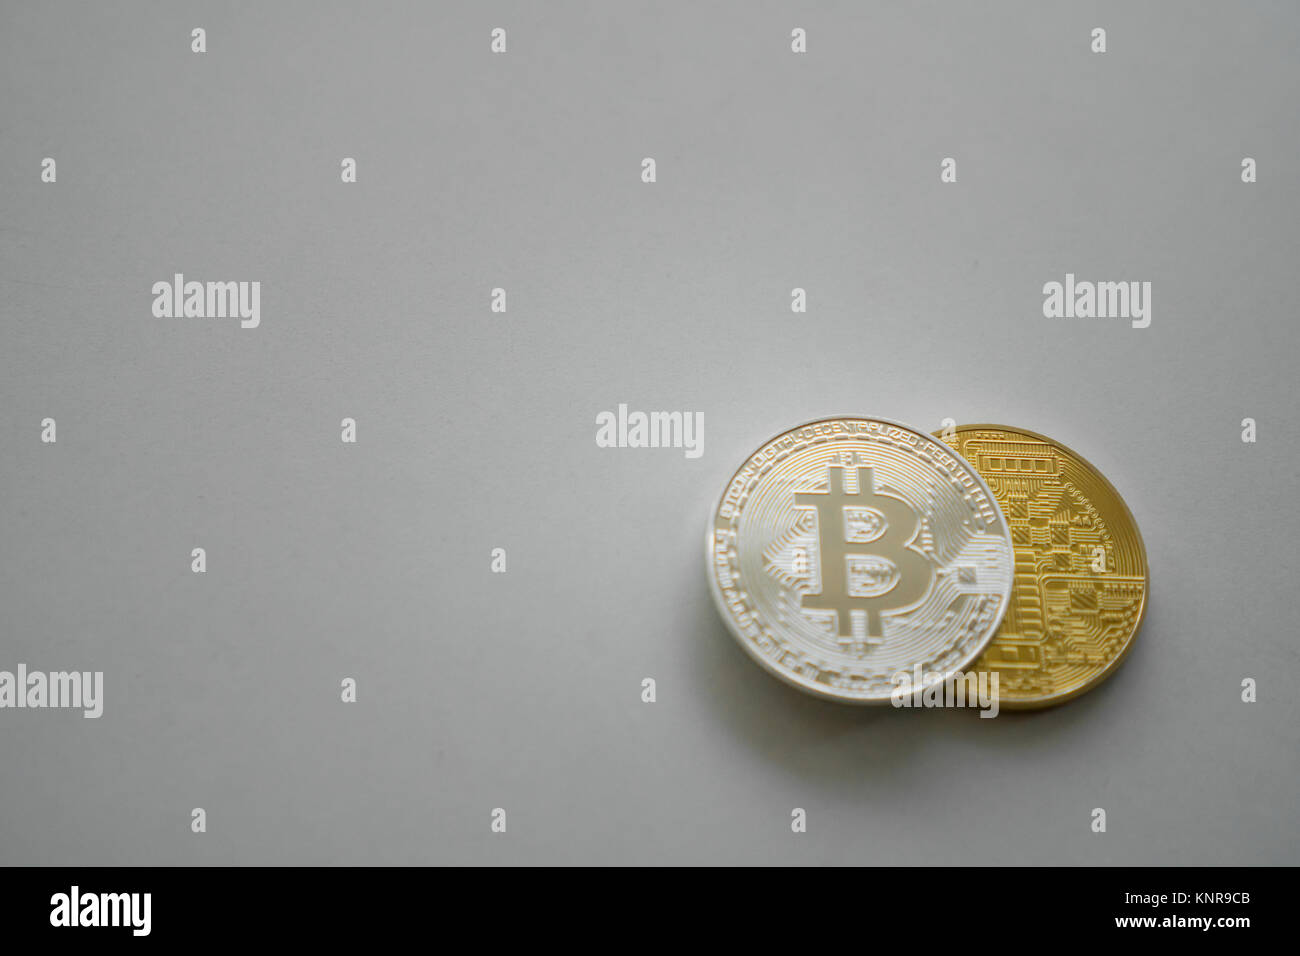 Silver and gold coins bit of a koin on a white background. BTC. Virtual currency. Crypto currency - Stock Image